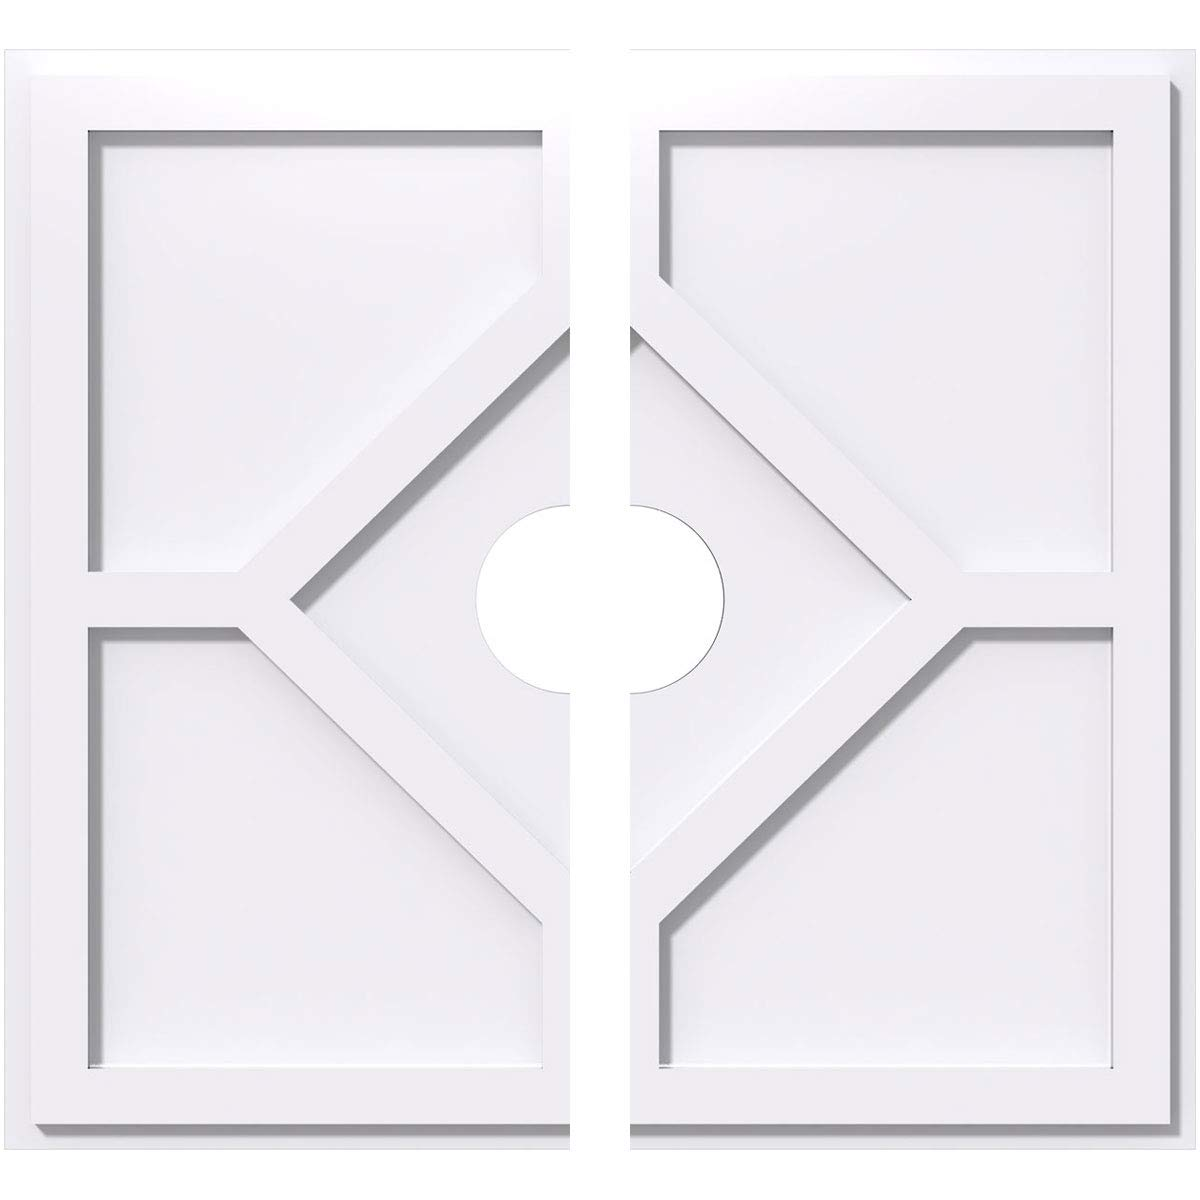 Ekena Millwork CMP36EY2-06000 36 in. OD x 6 in. ID Square Embry Architectural Grade PVC Contemporary Ceiling Medallion - 2 Piece